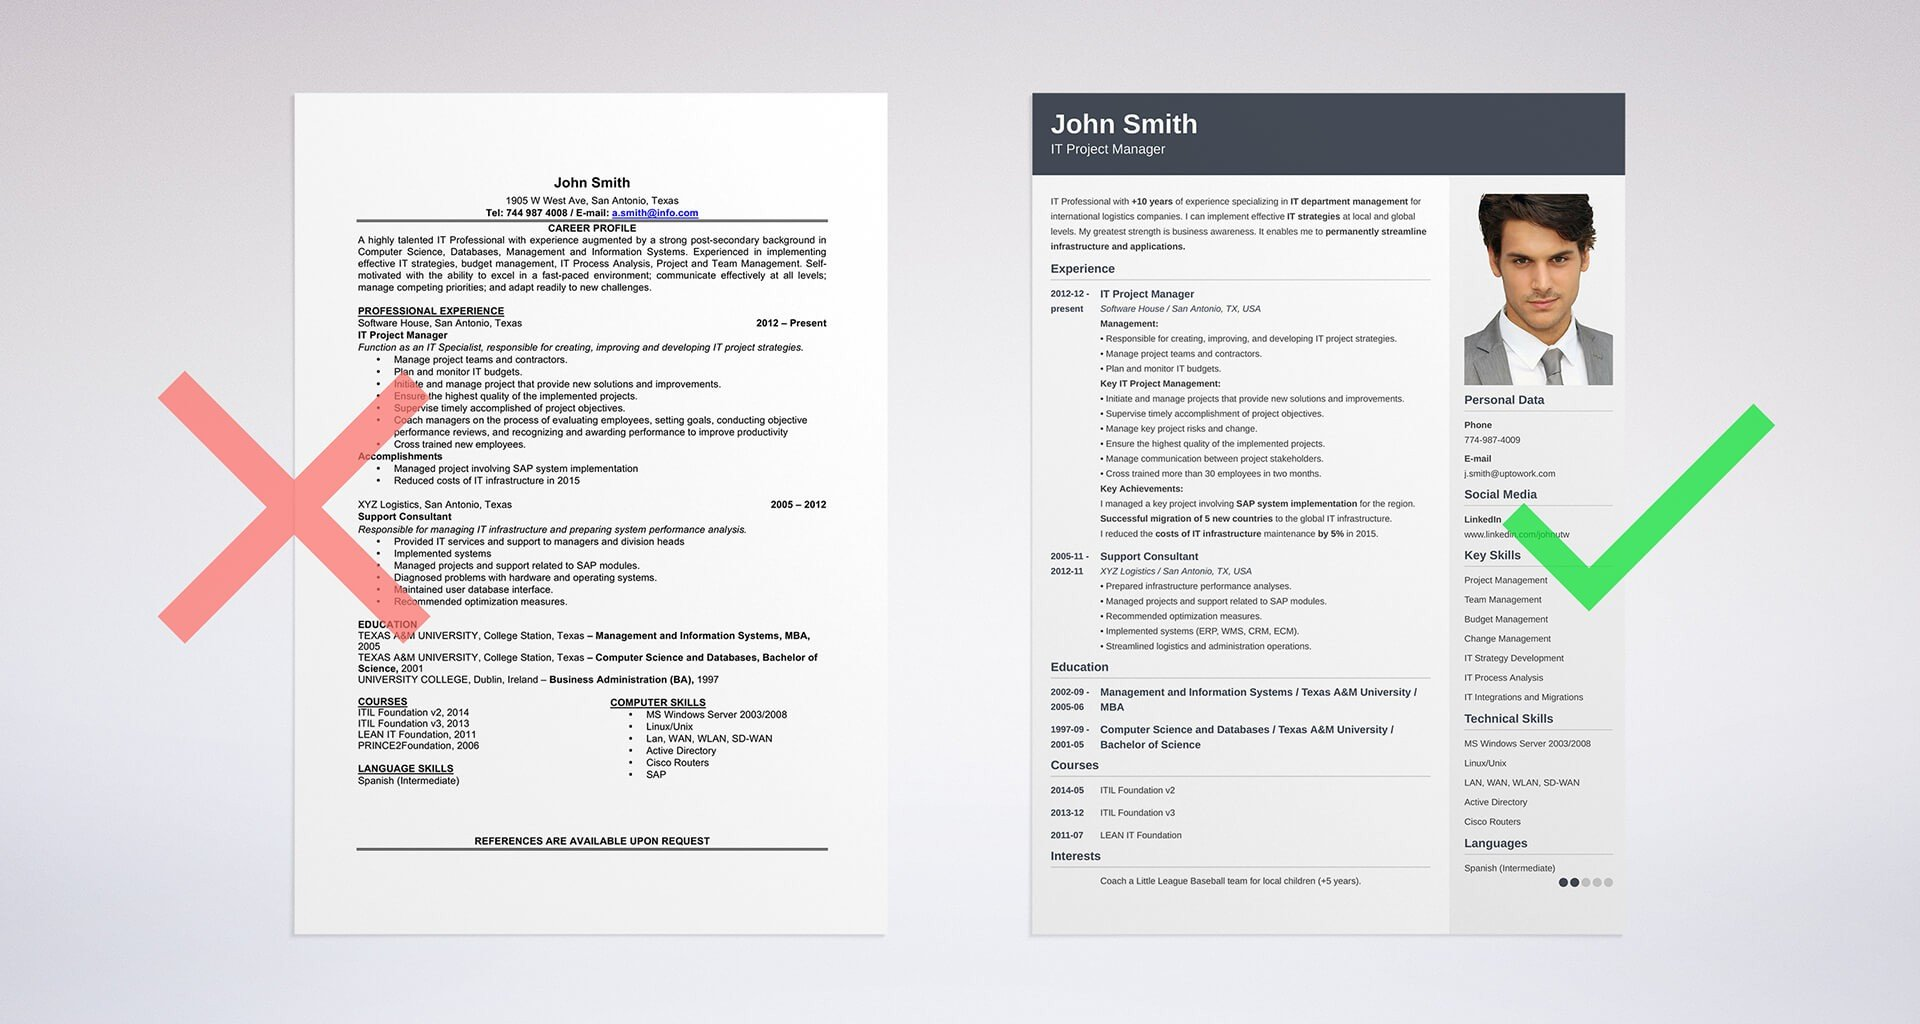 Resume Interest Examples 60 Best Examples Of Hobbies Interests To